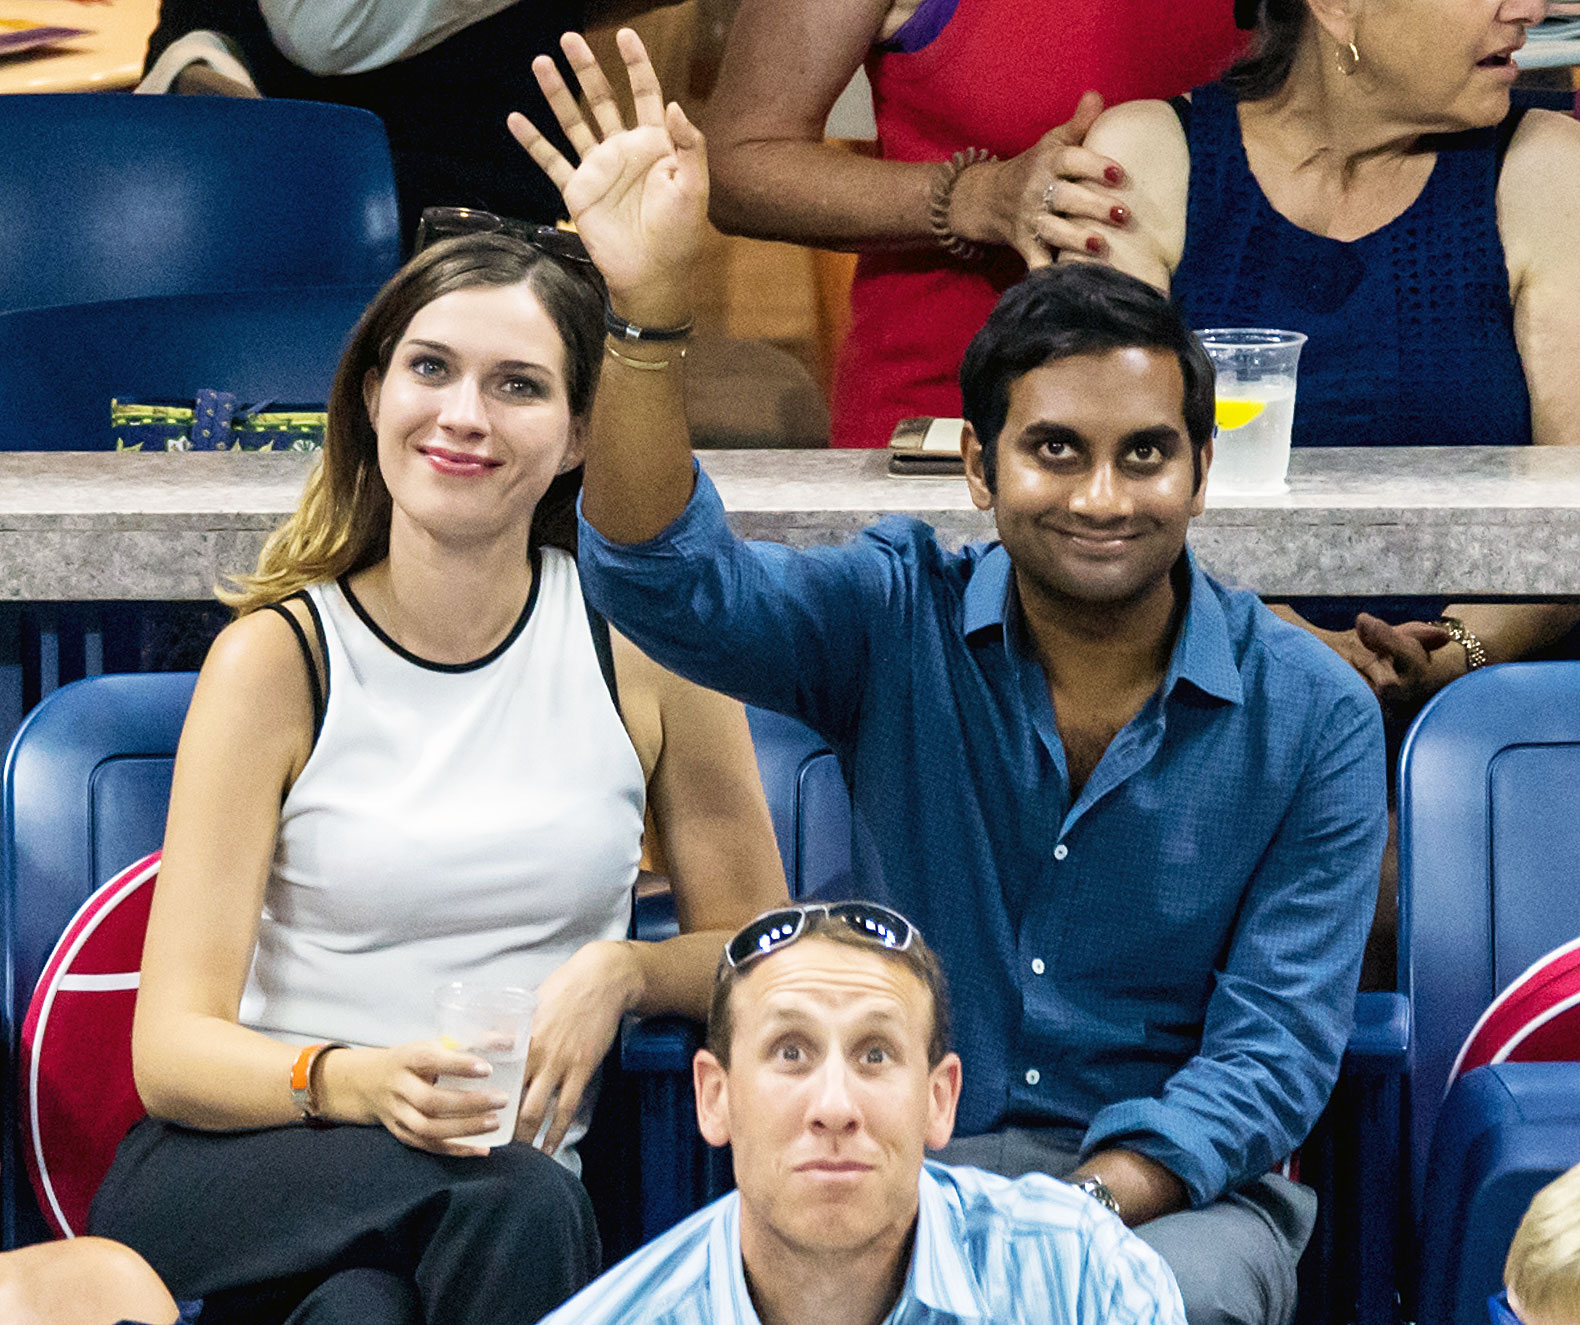 Aziz Ansari Us Open 2018 - The Master of None star stepped out for a rare appearance on September 3.